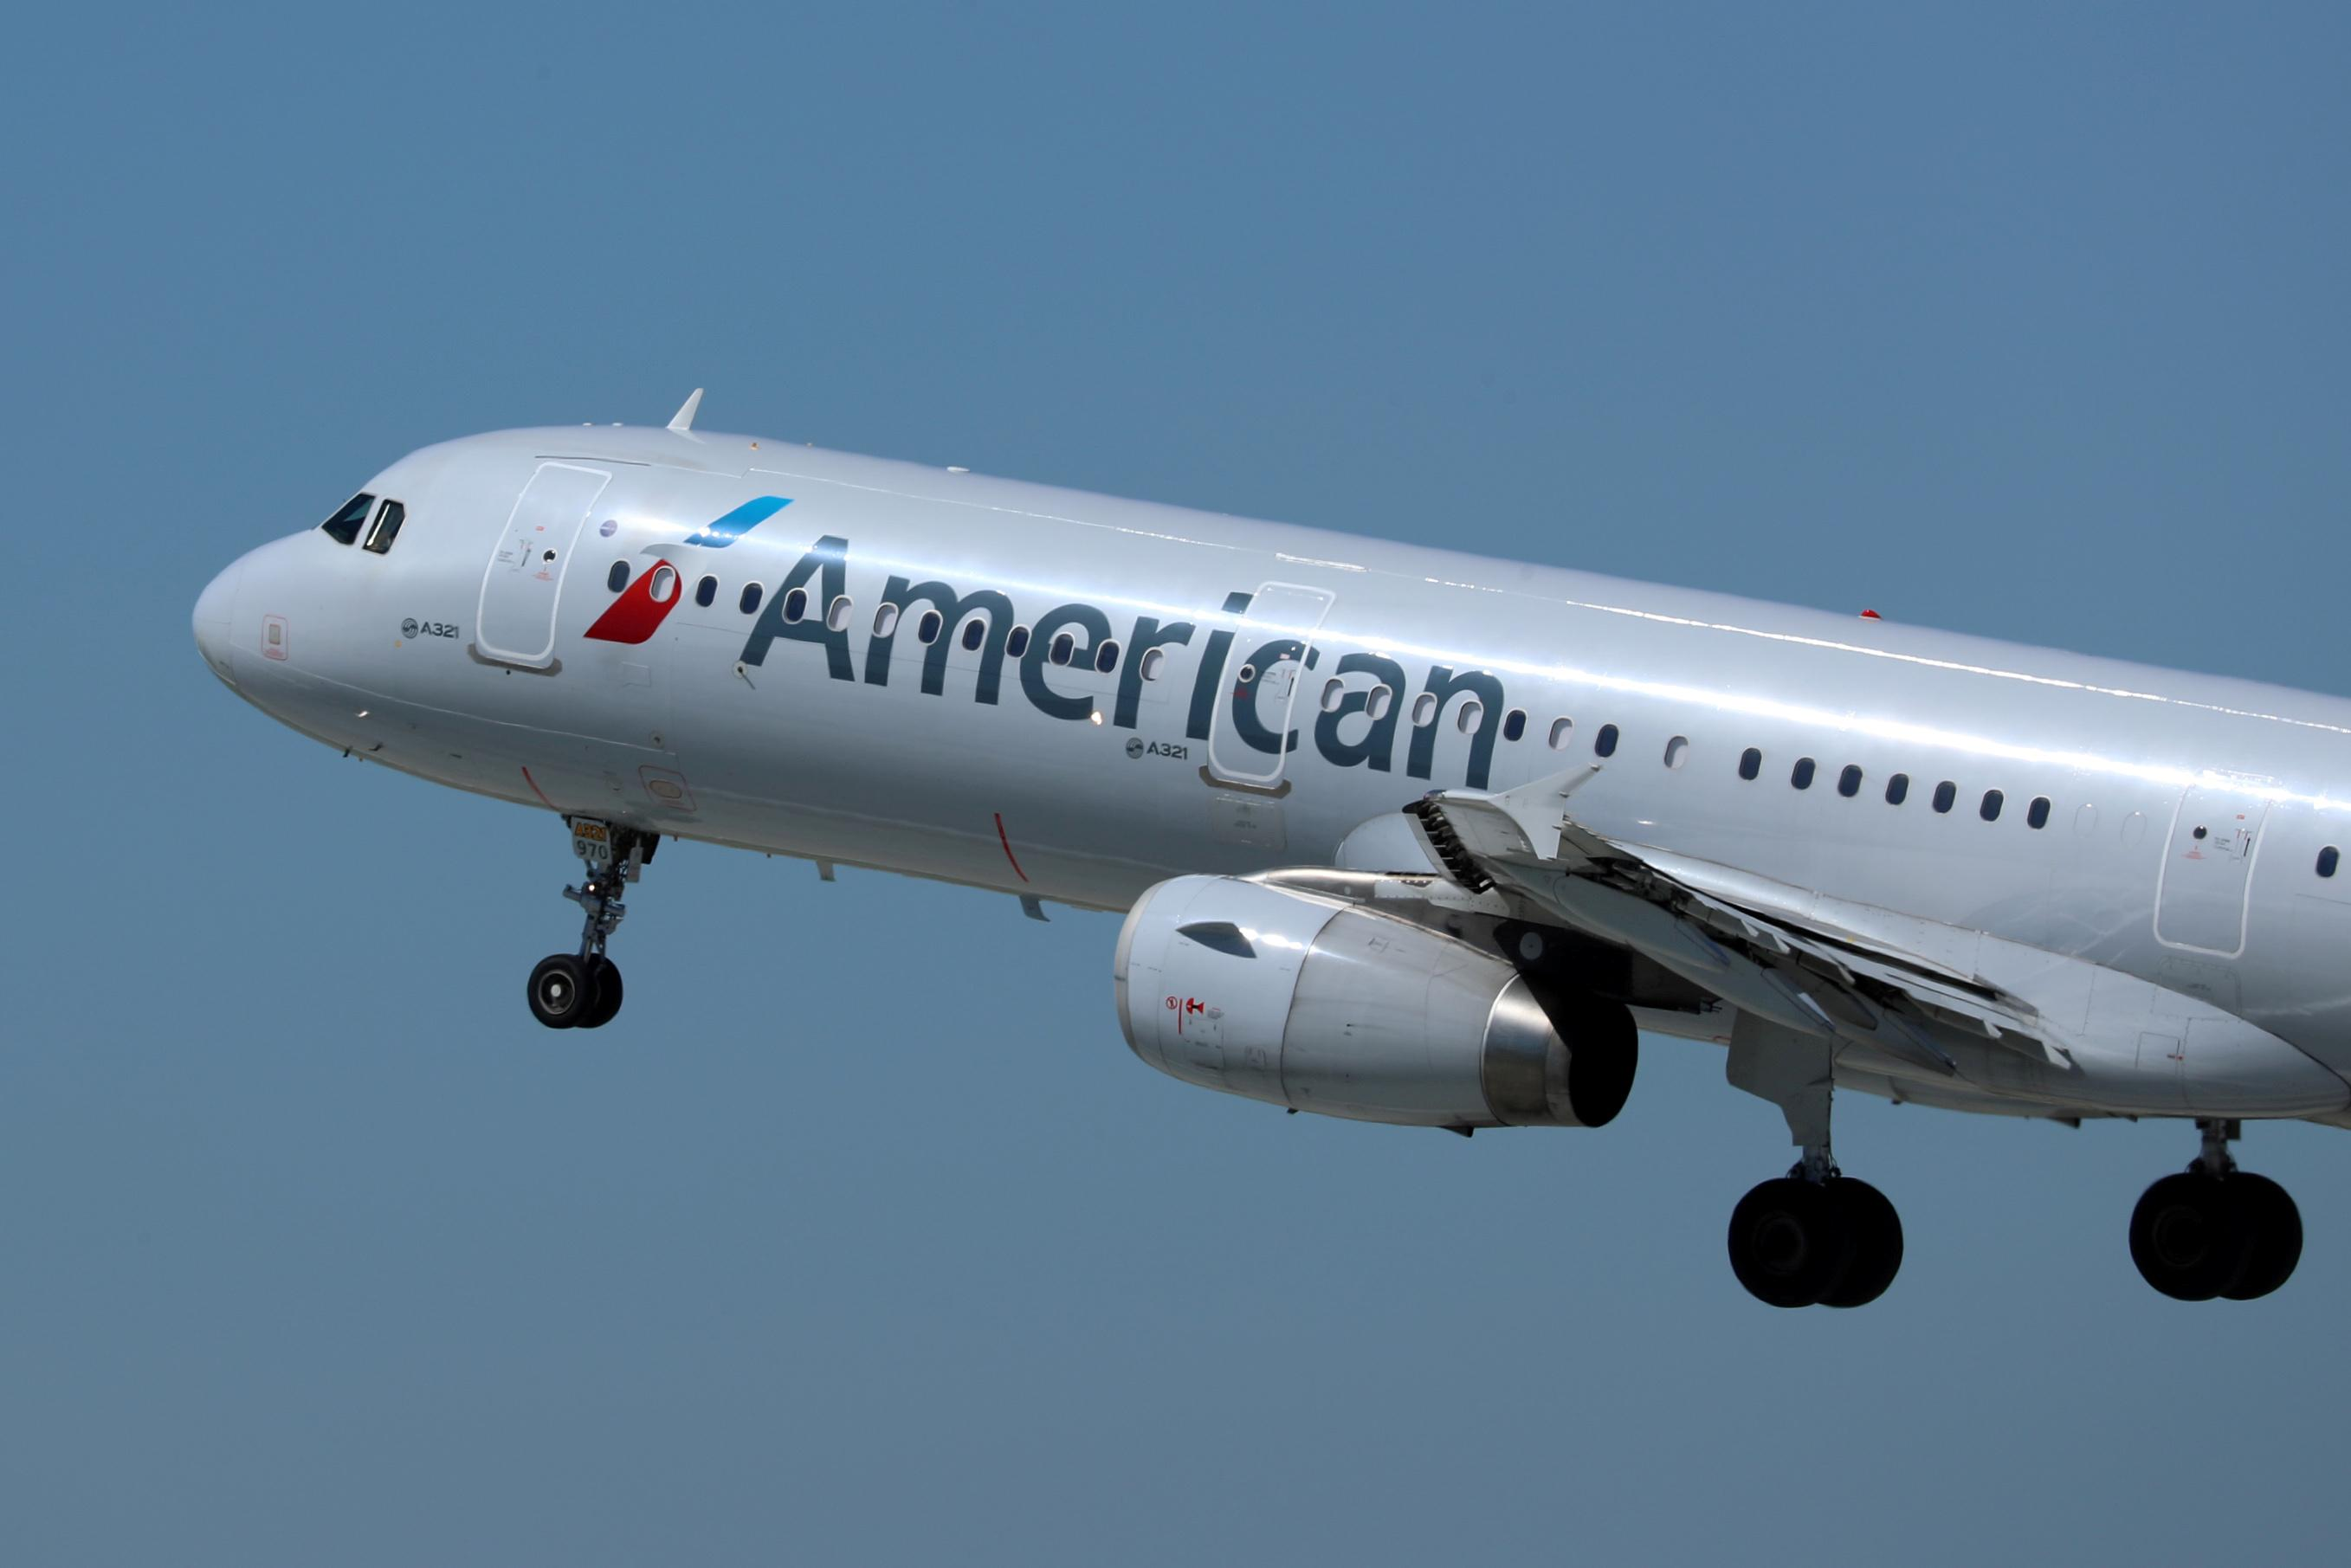 American Airlines Cancels 275 PSA Flights, Charlotte Douglas International Airport Most Impacted